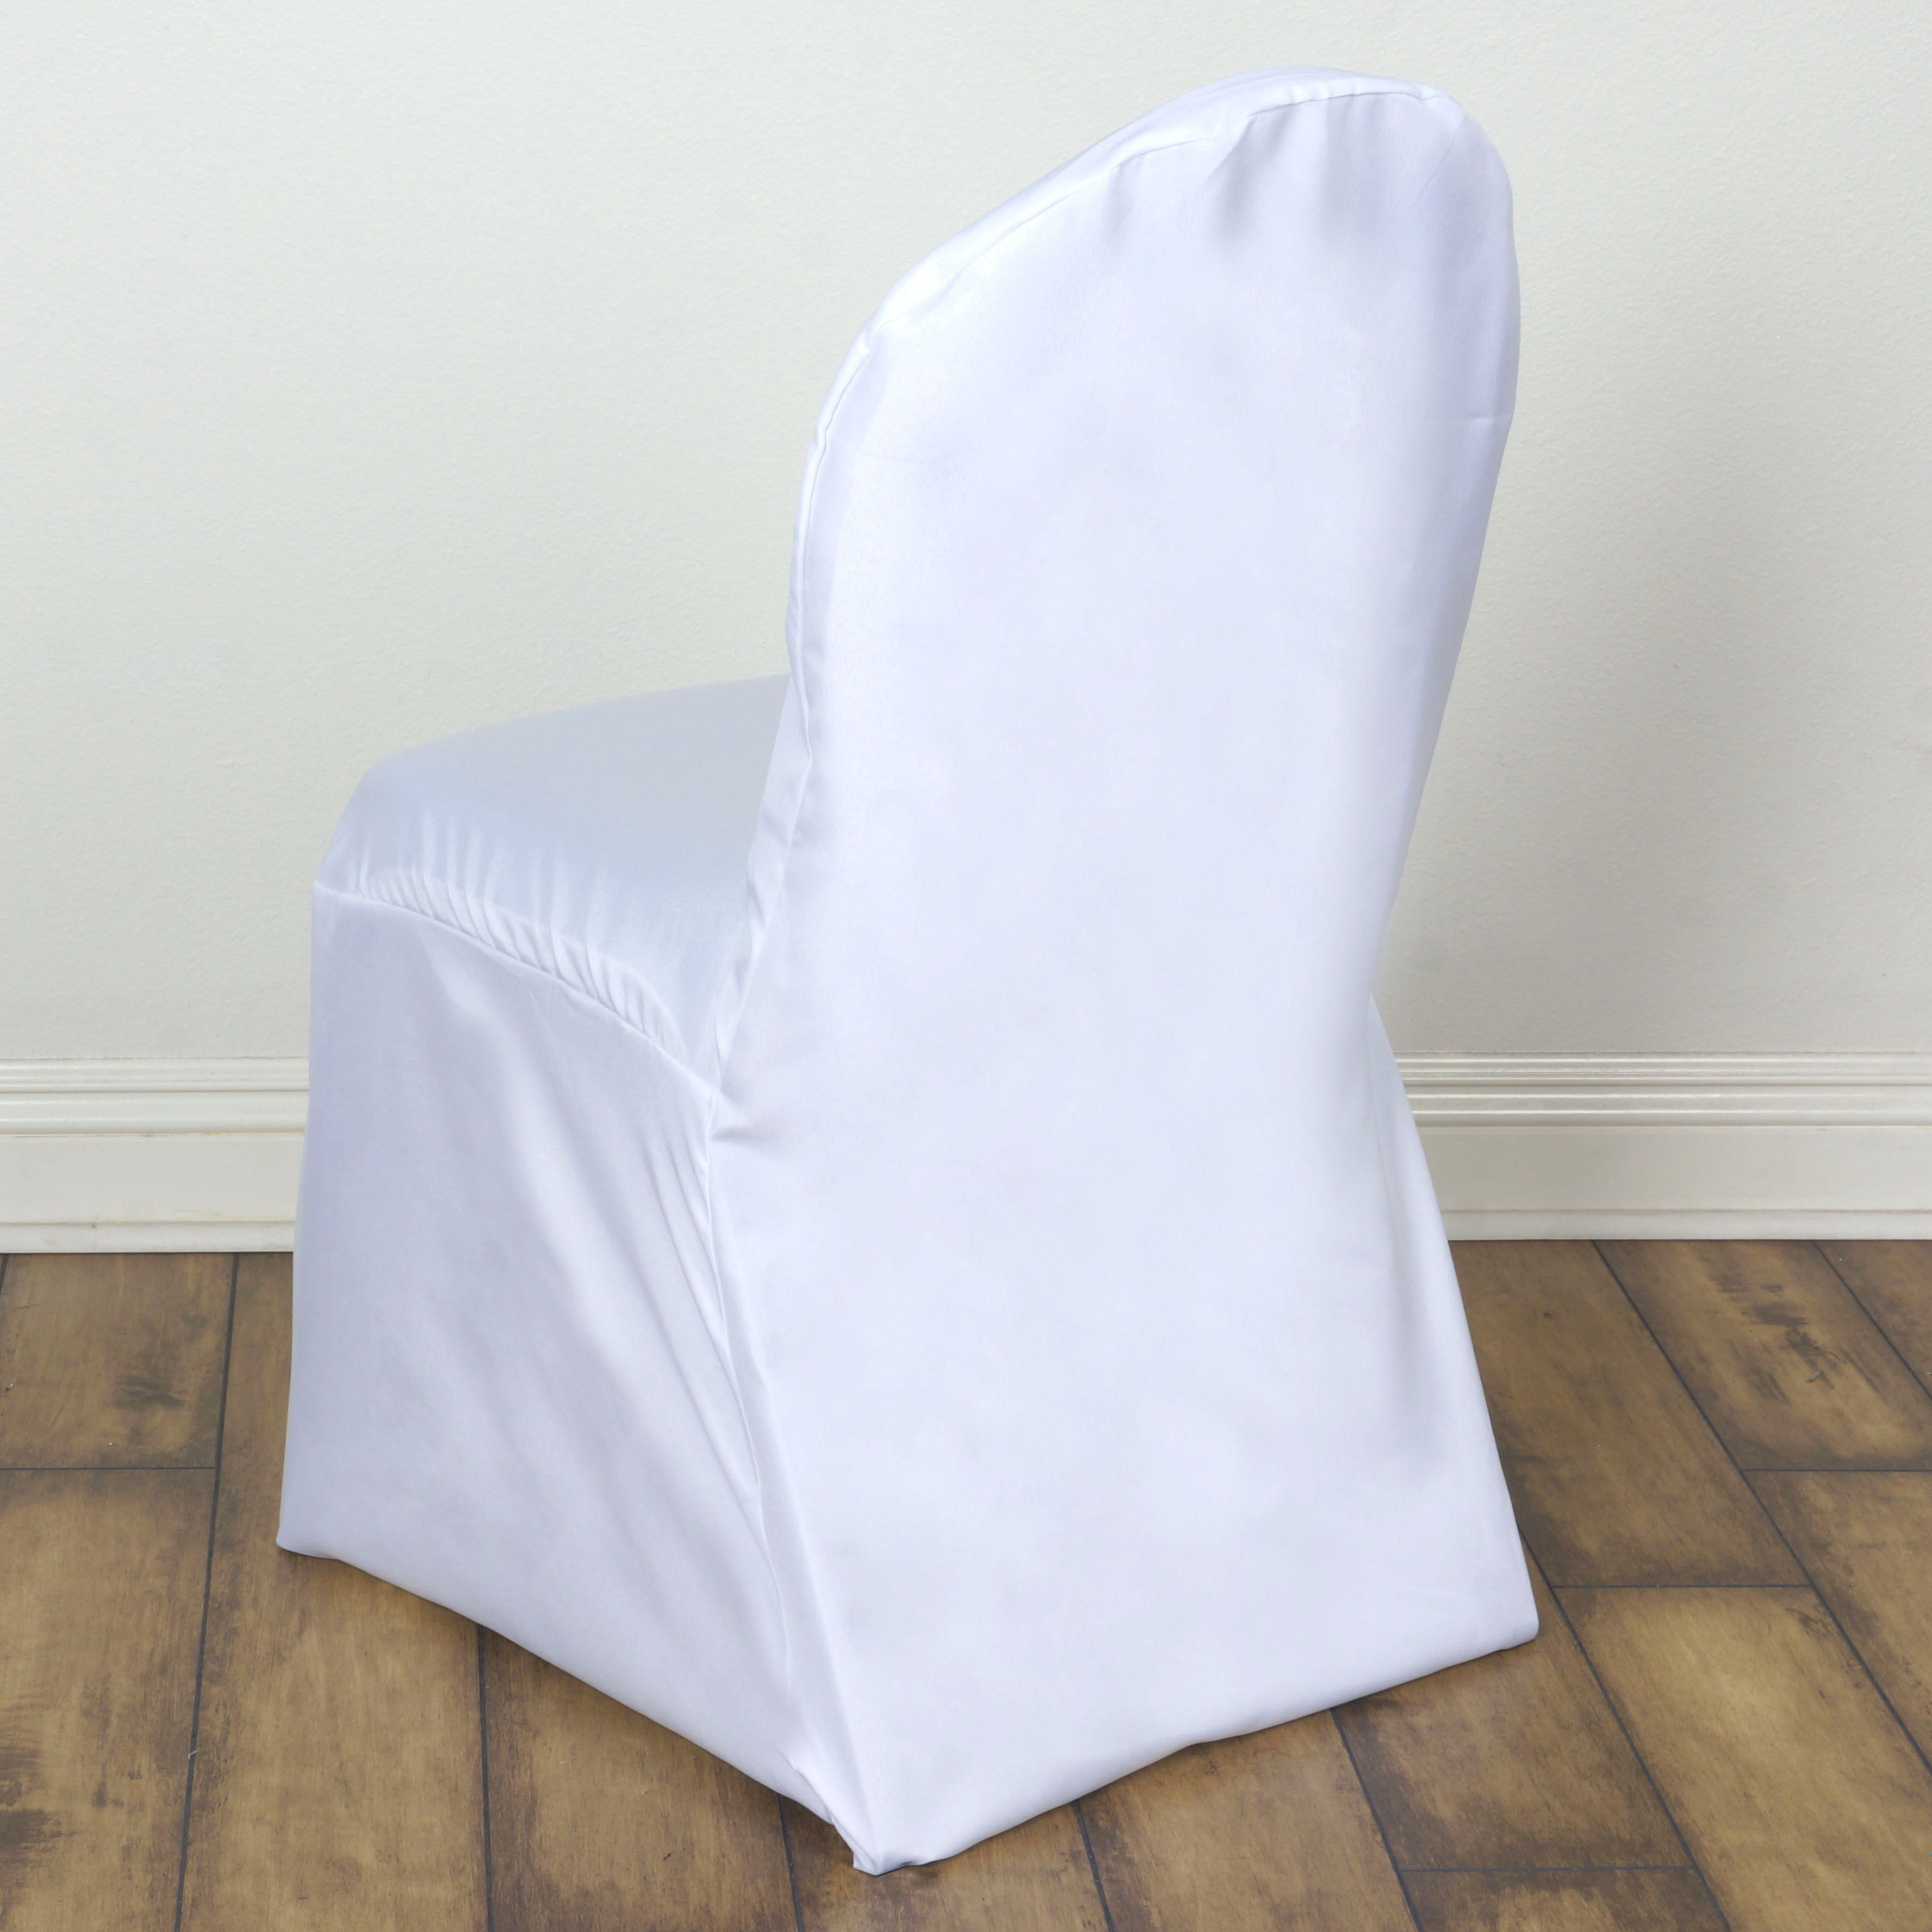 100 pcs polyester banquet chair covers wedding reception party supplies sale